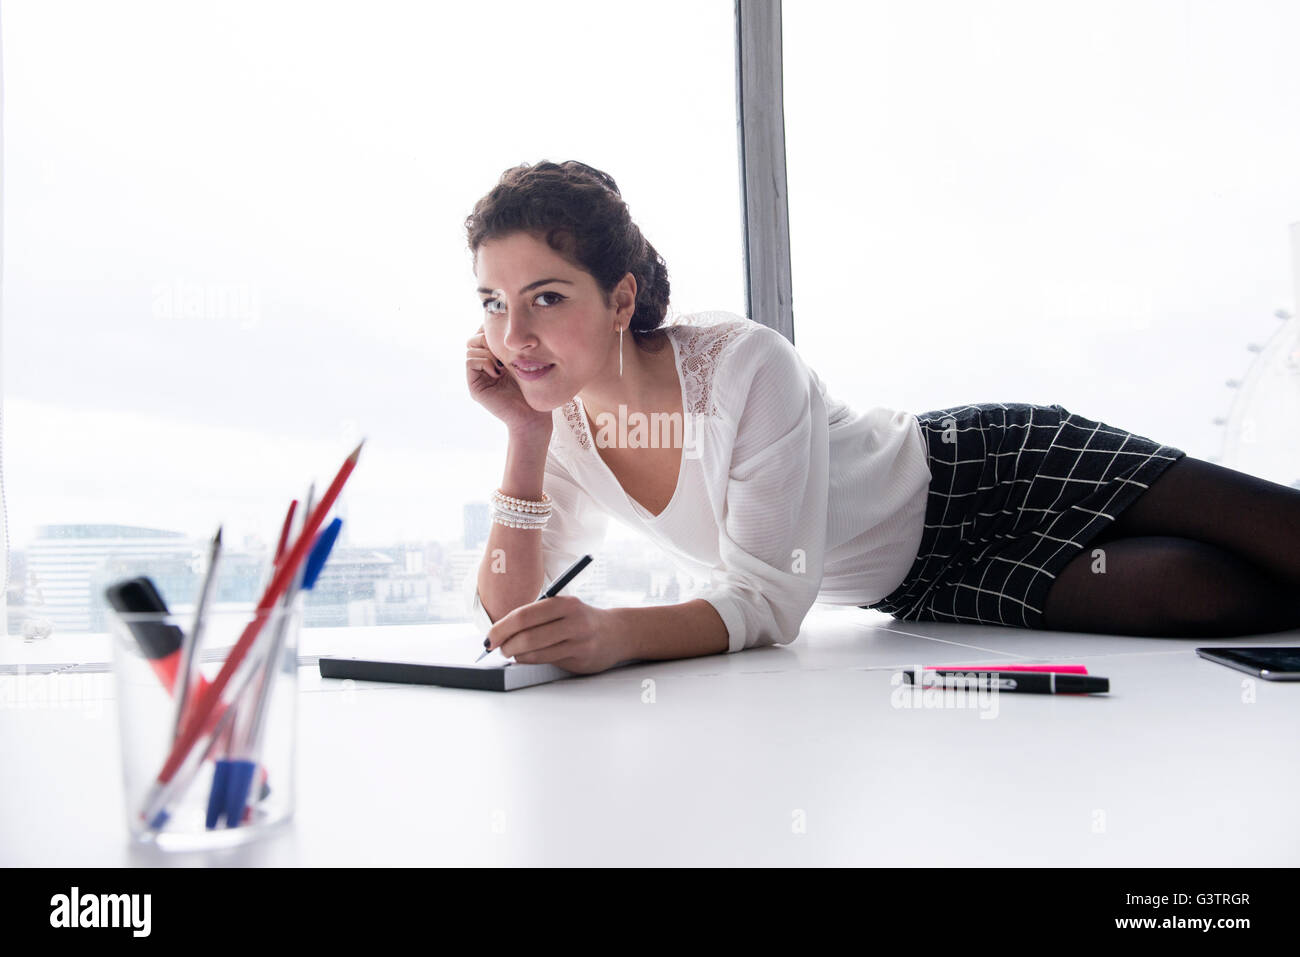 A professional woman making notes on a pad in a high rise office environment. - Stock Image